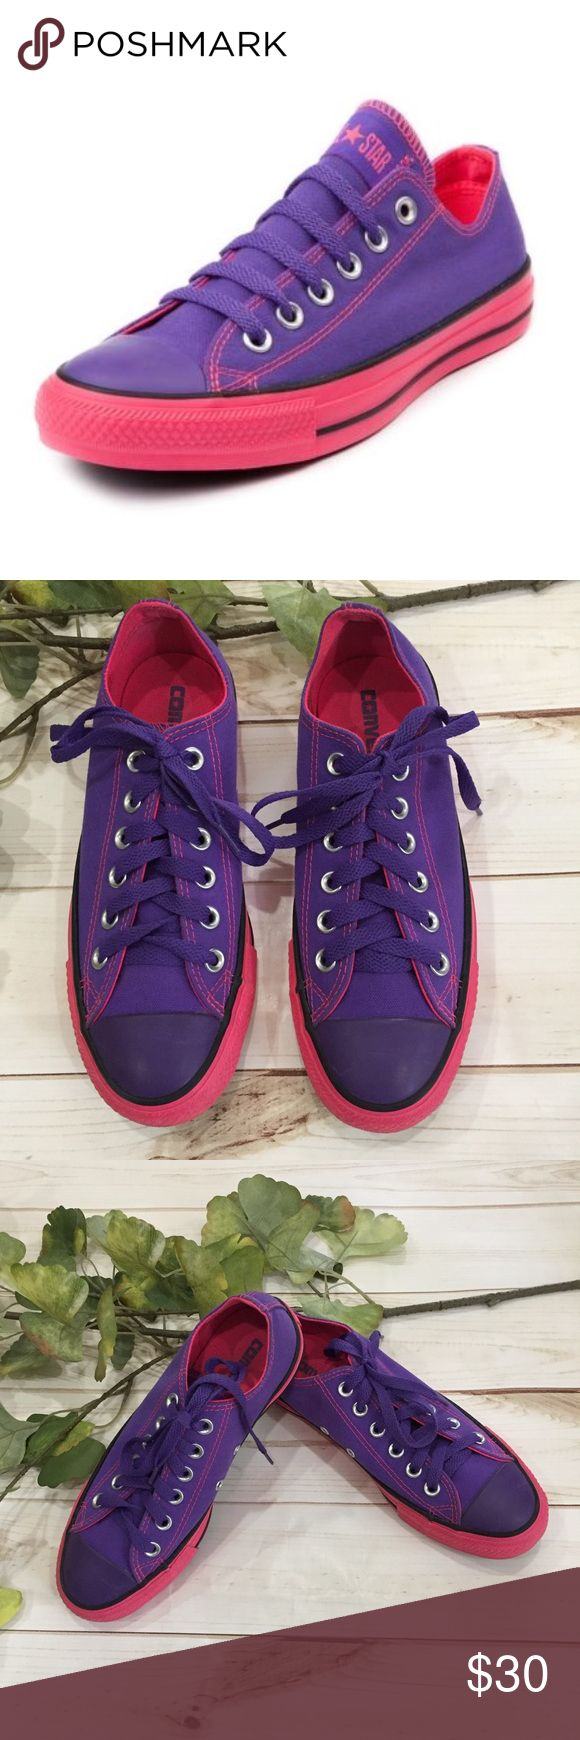 🦄Converse purple Chuck Taylor tennis shoes! 🦄Converse purple Chuck Taylor tennis shoes! These are super cute purple and pink Chucks that have been only worn a couple times and look great! These are perfect with a midi dress, shorts, or jeans. A great pop of color! Preloved in excellent condition. Converse Shoes Sneakers